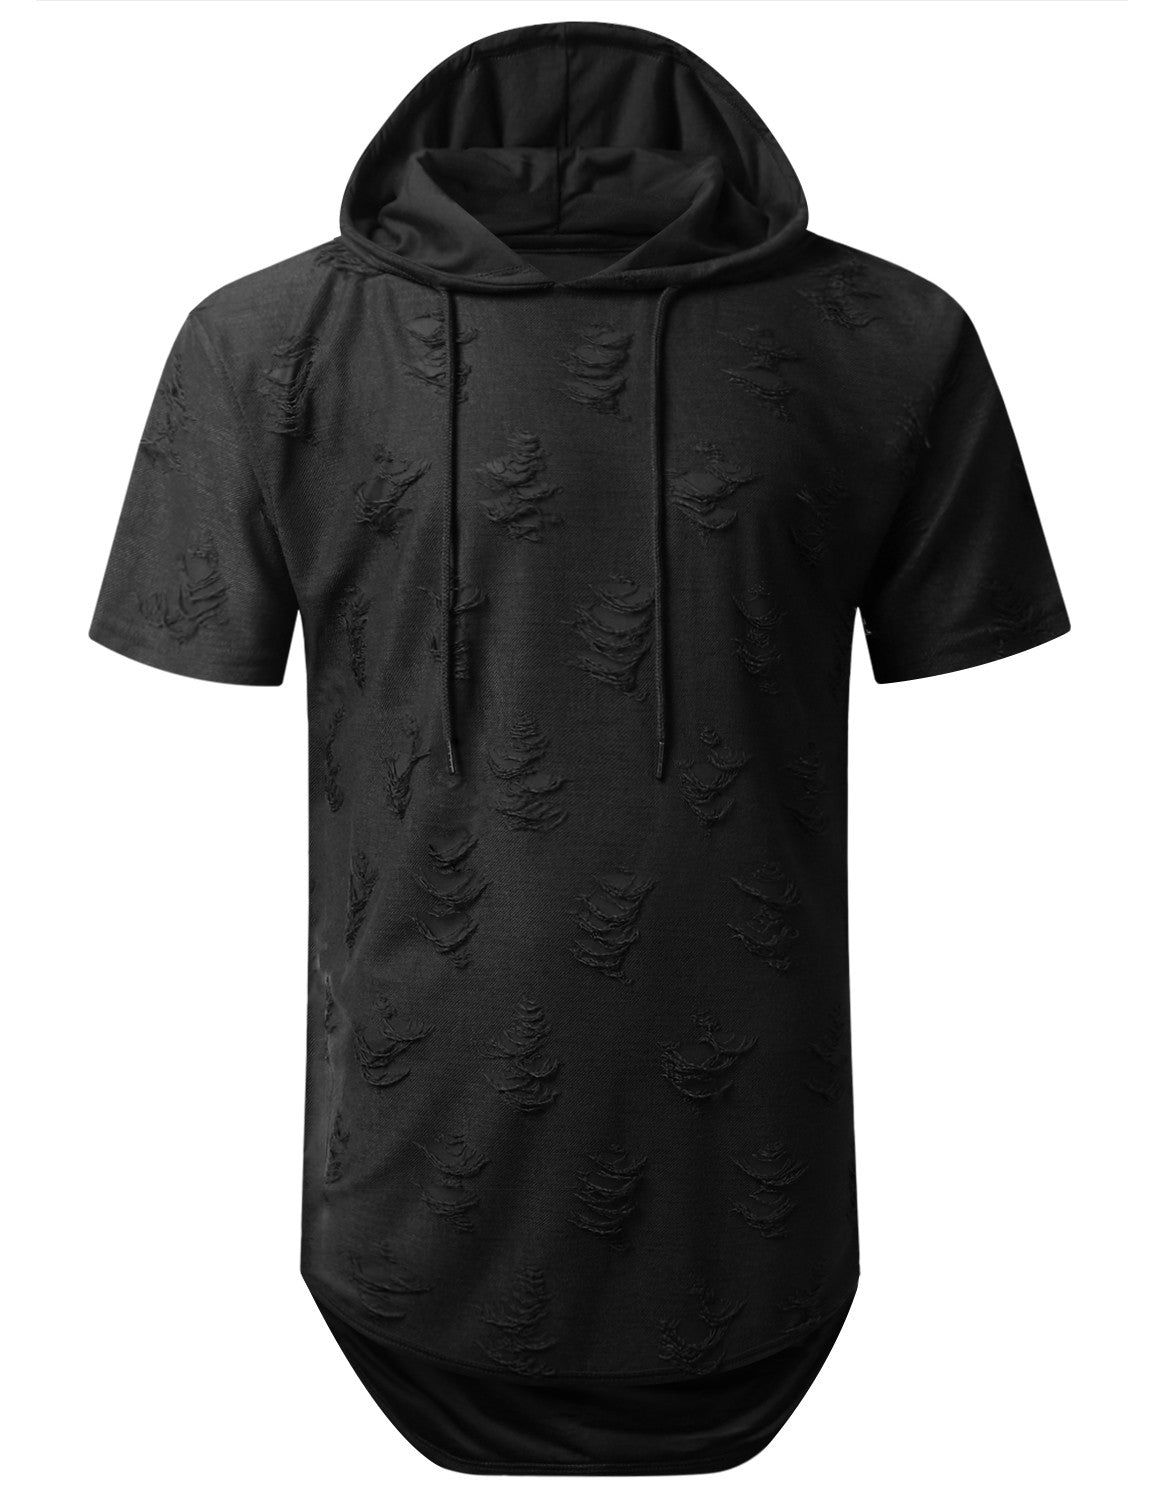 BLACK Ripped Lightweight Short Sleeve Hoodie - URBANCREWS